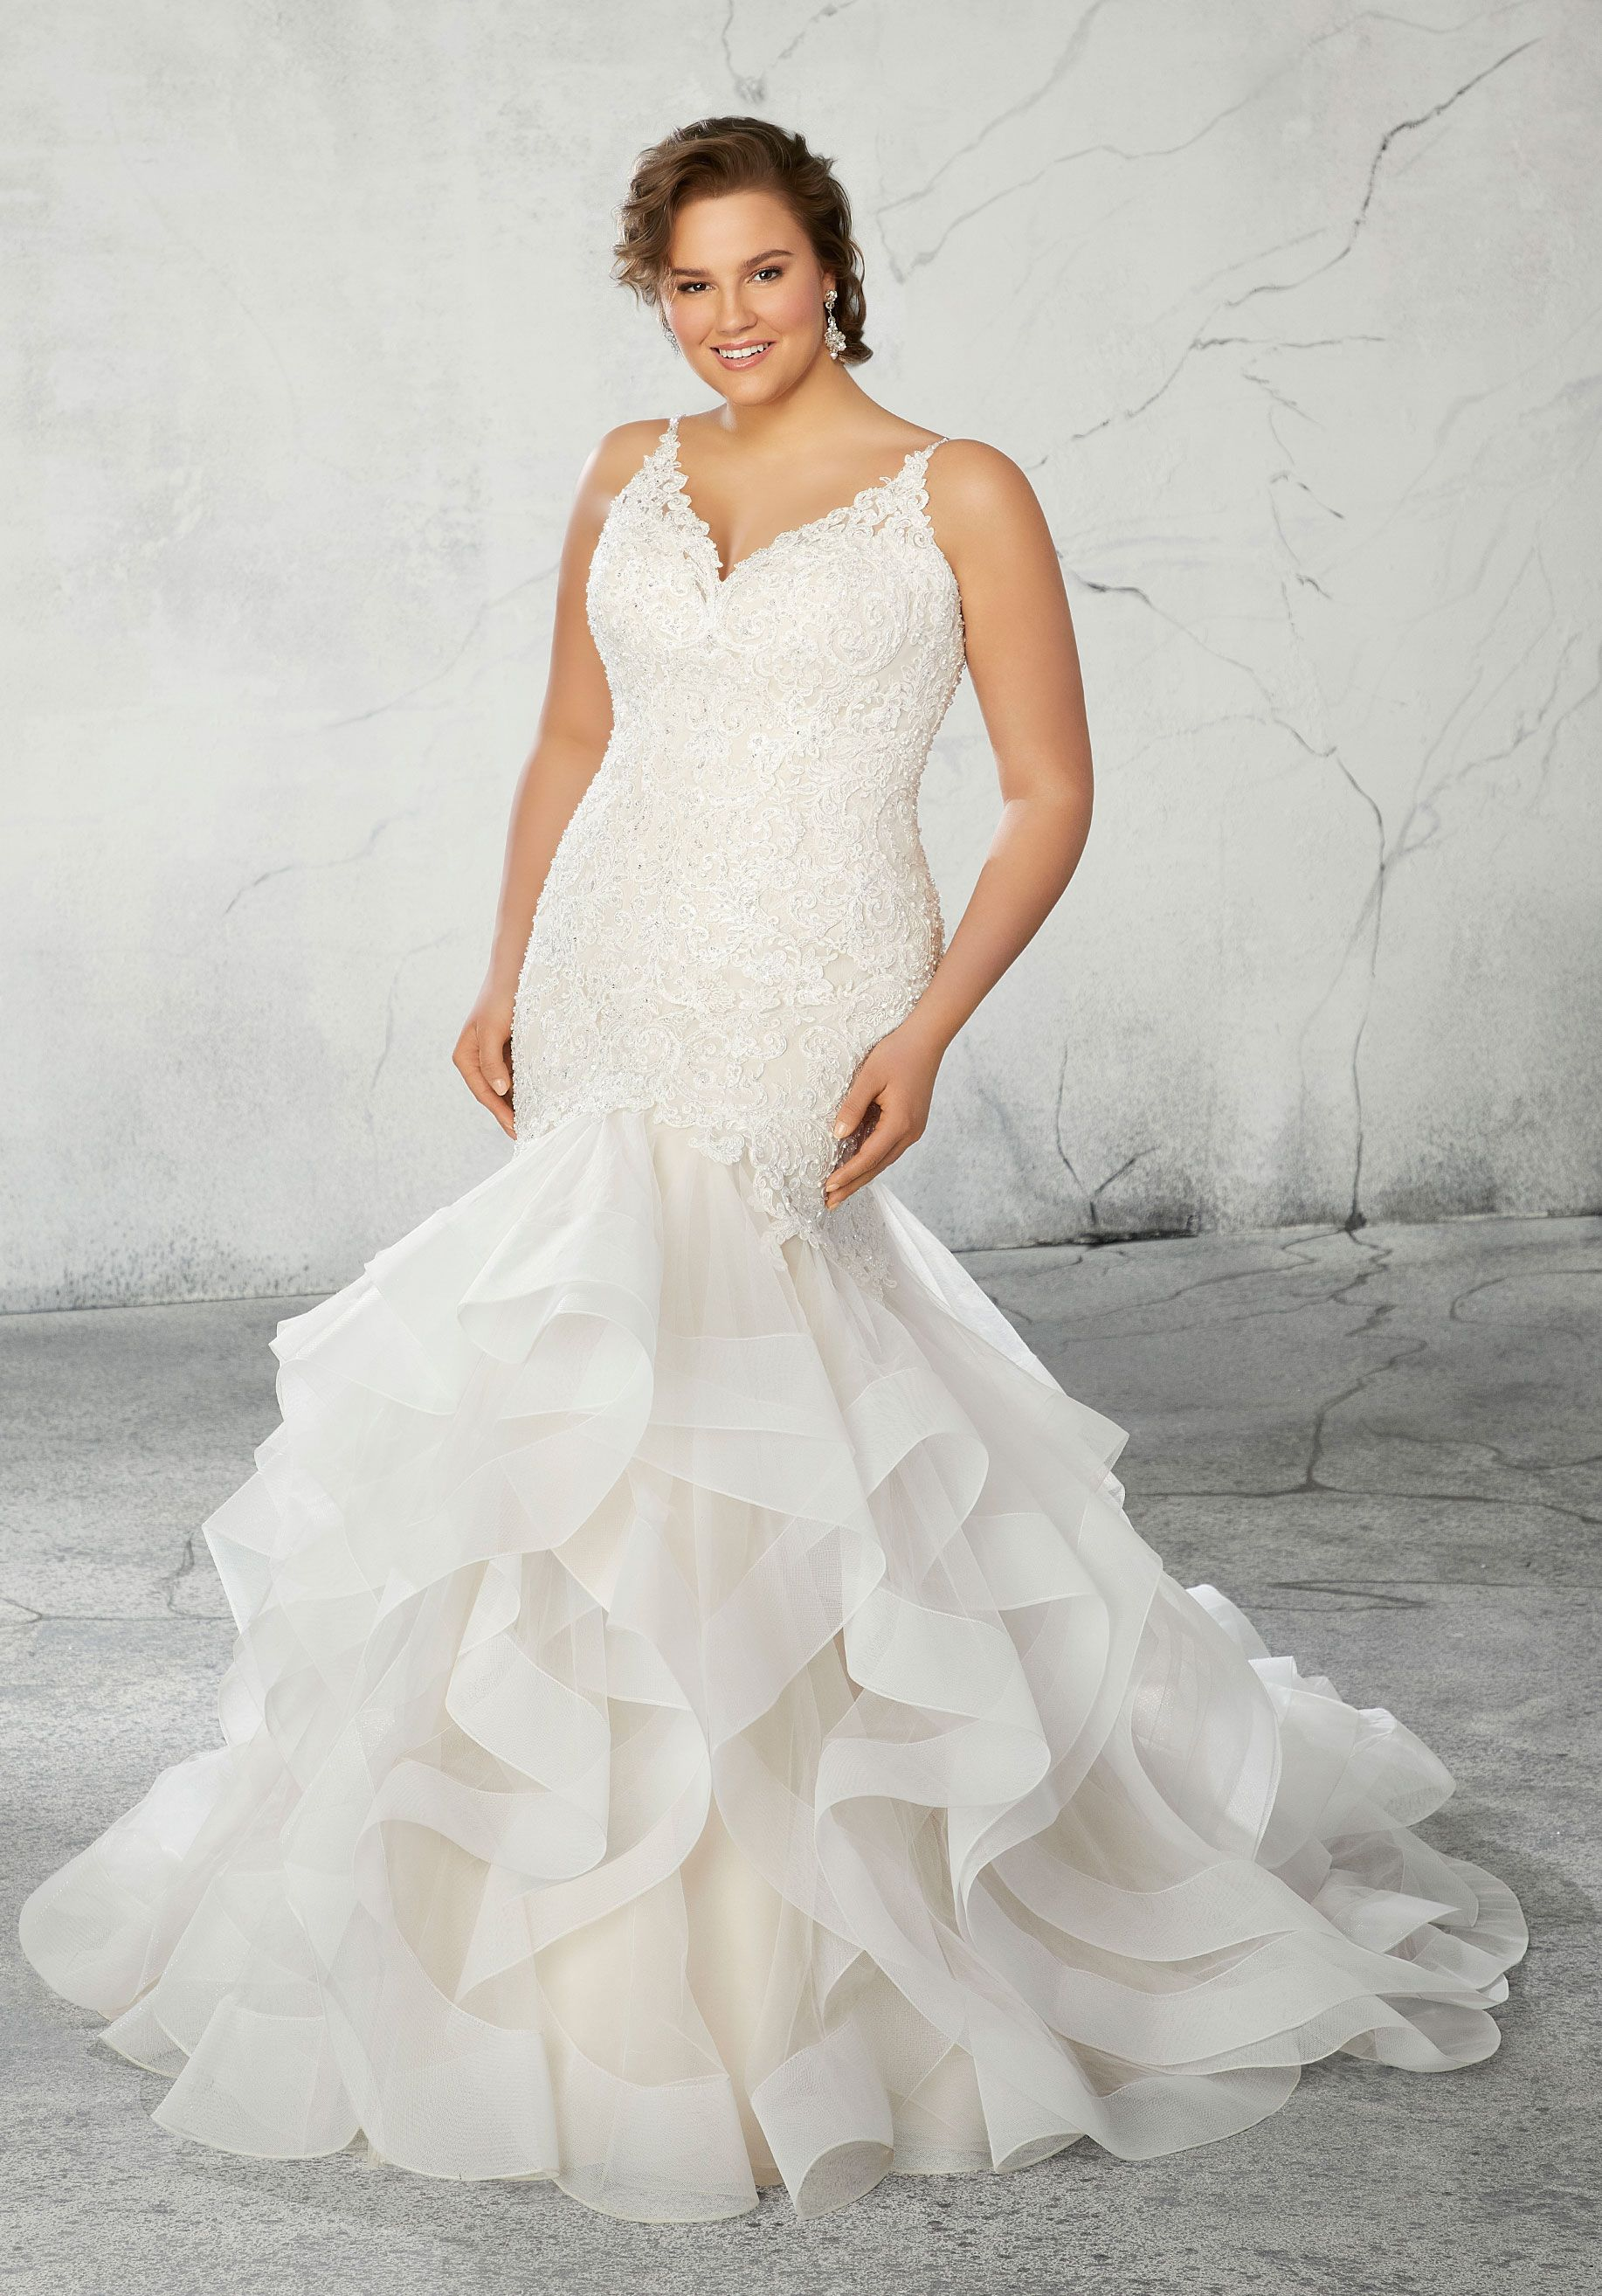 This plus size wedding dress features thin beaded straps